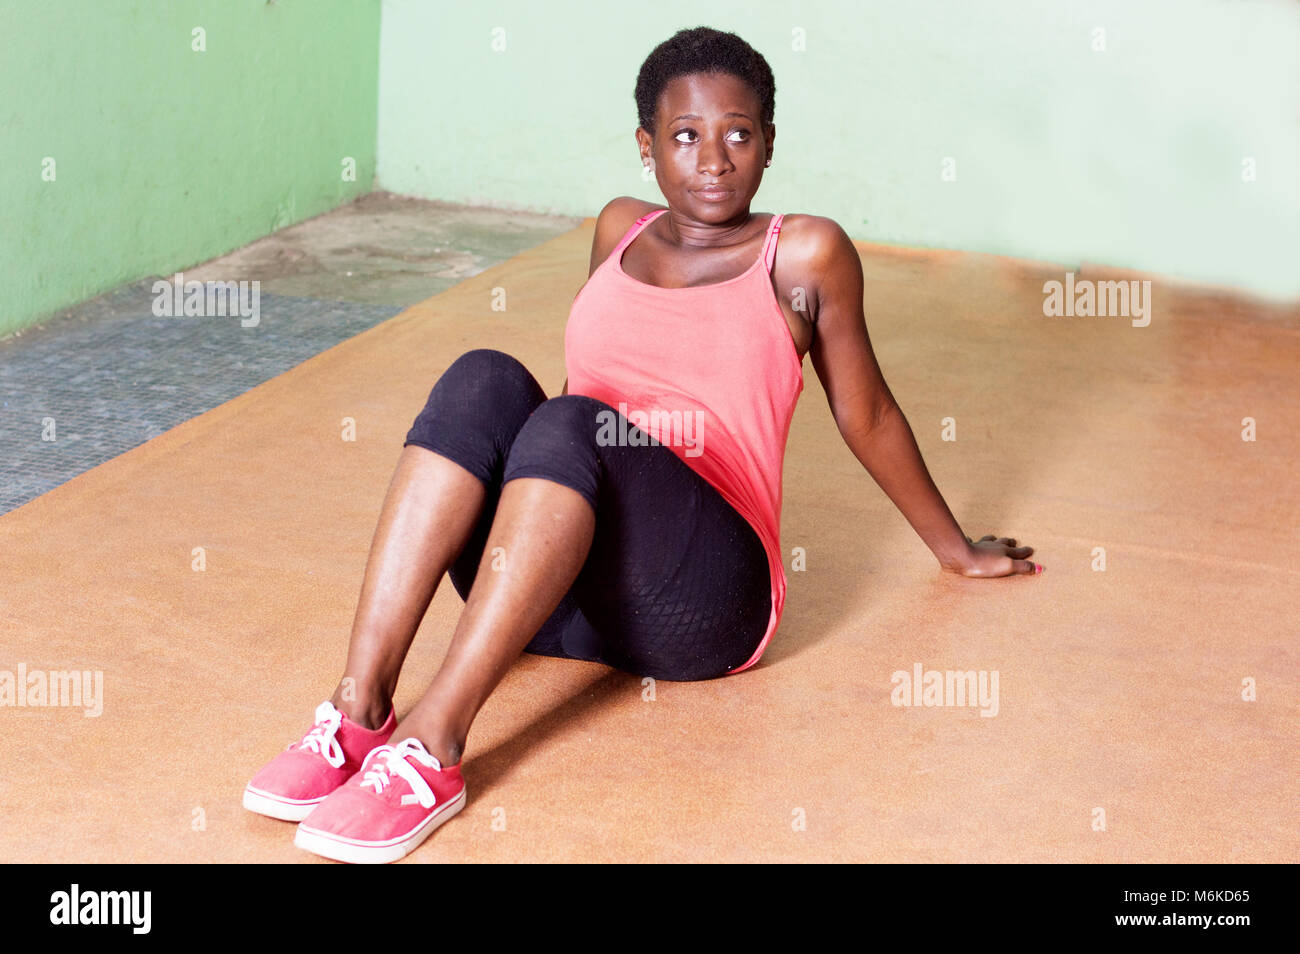 Young woman sitting in a gym while waiting for her trainer. - Stock Image